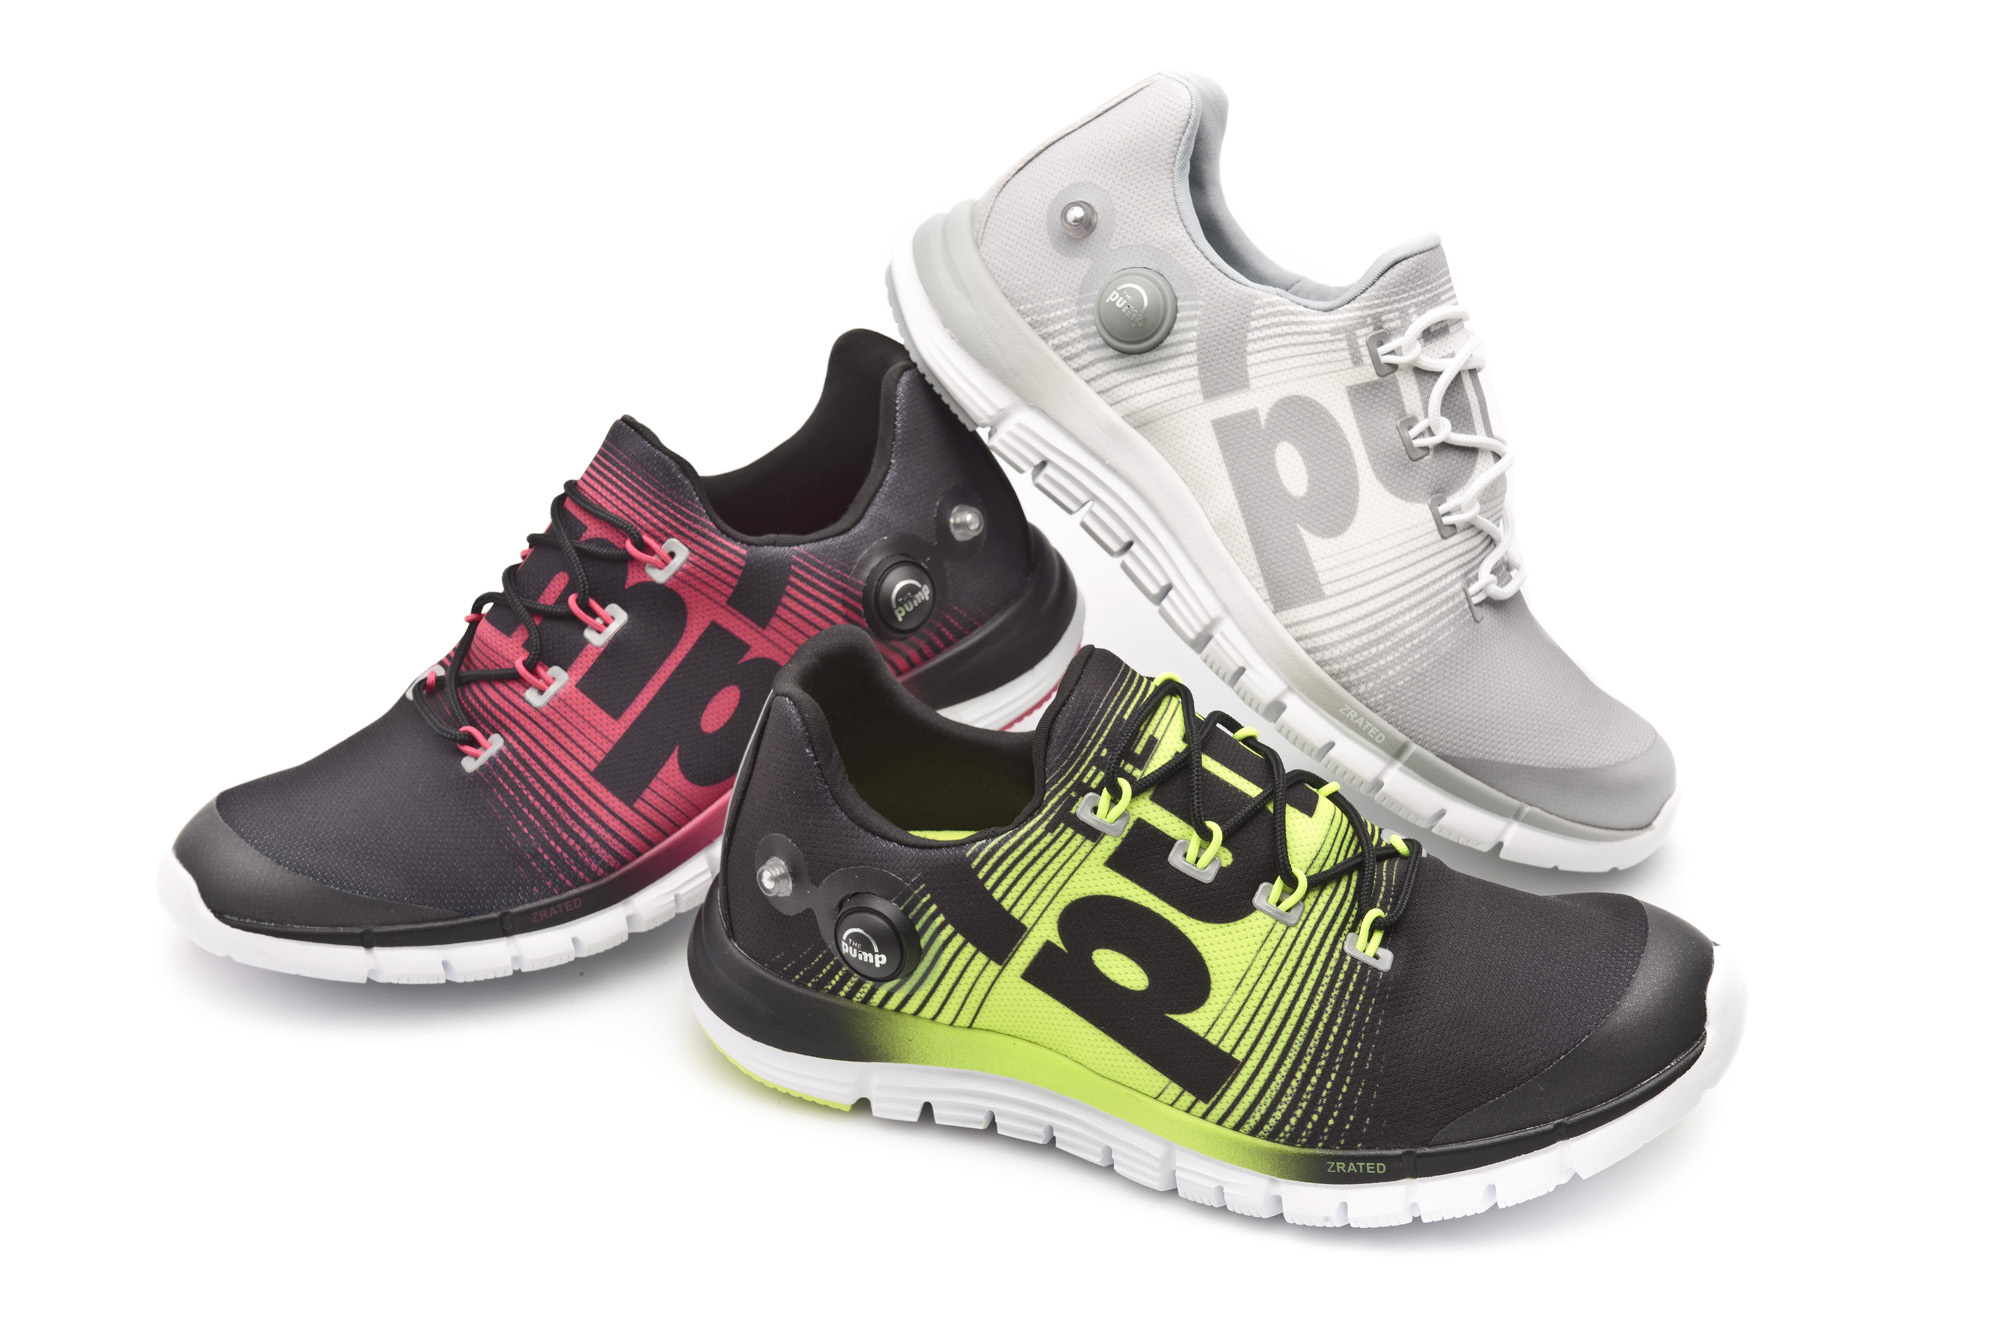 d4dbbff3a249 promo code for reebok zpump fusion revolutionizes running with new custom  fit technology business wire a2844